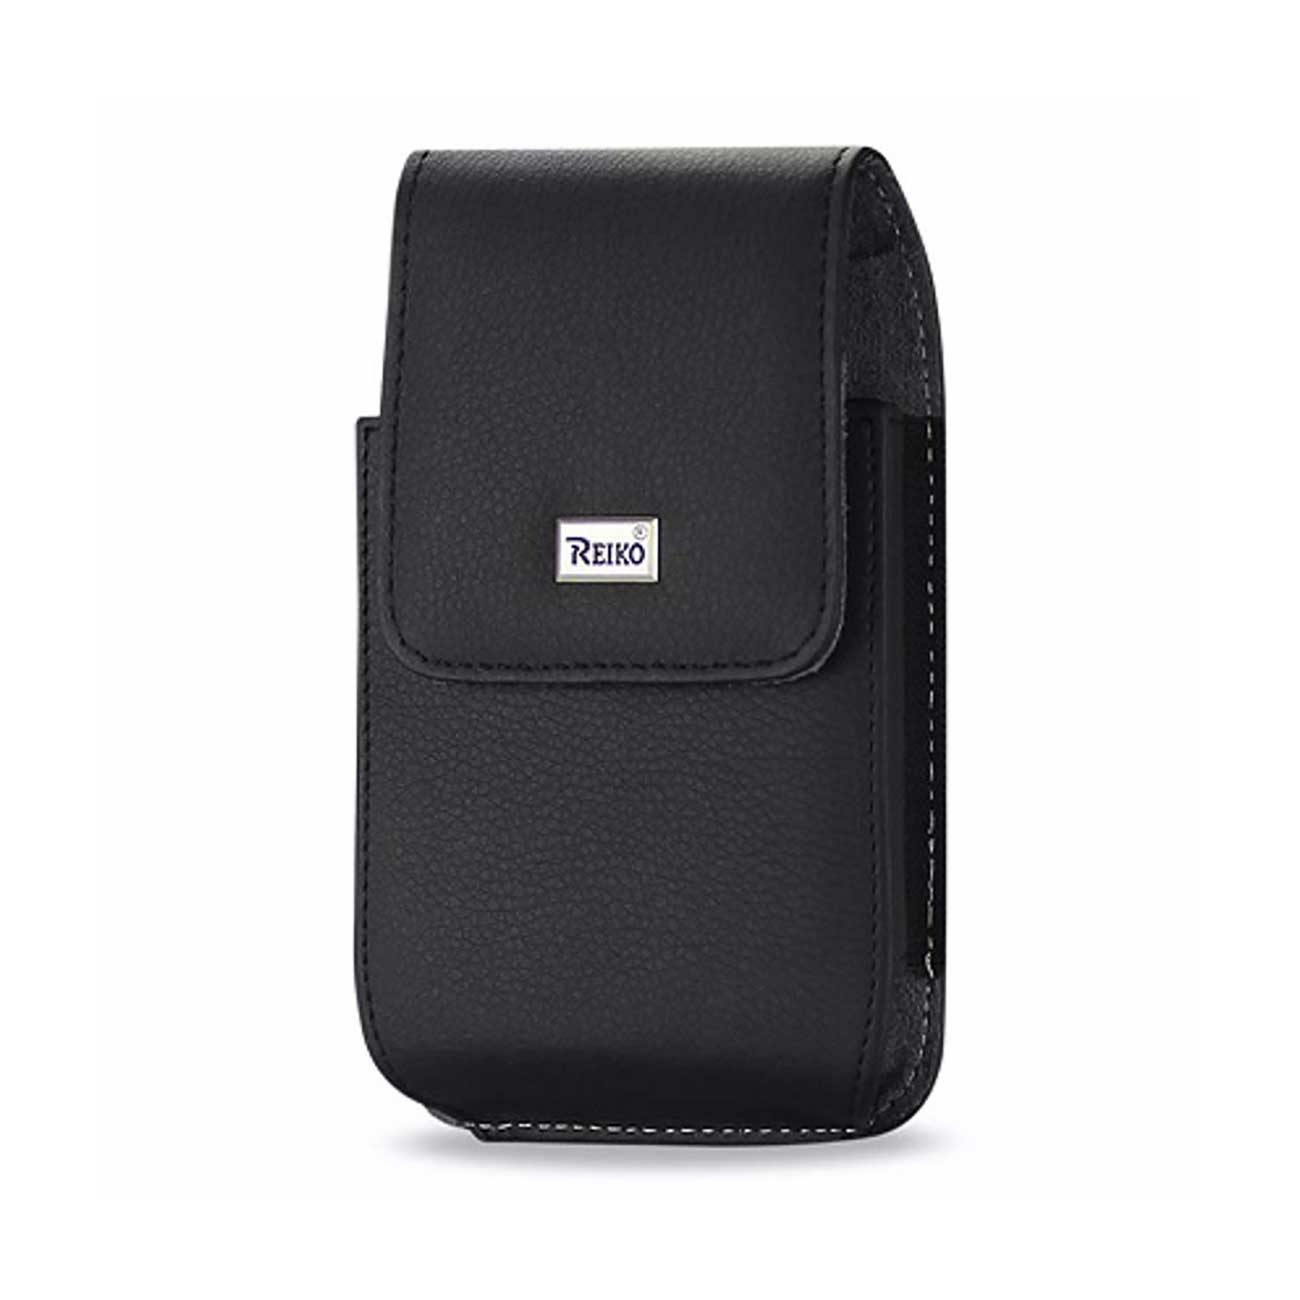 Leather Vertical Pouch With Metal Logo In Black (7.0*3.9*0.7 Inches)